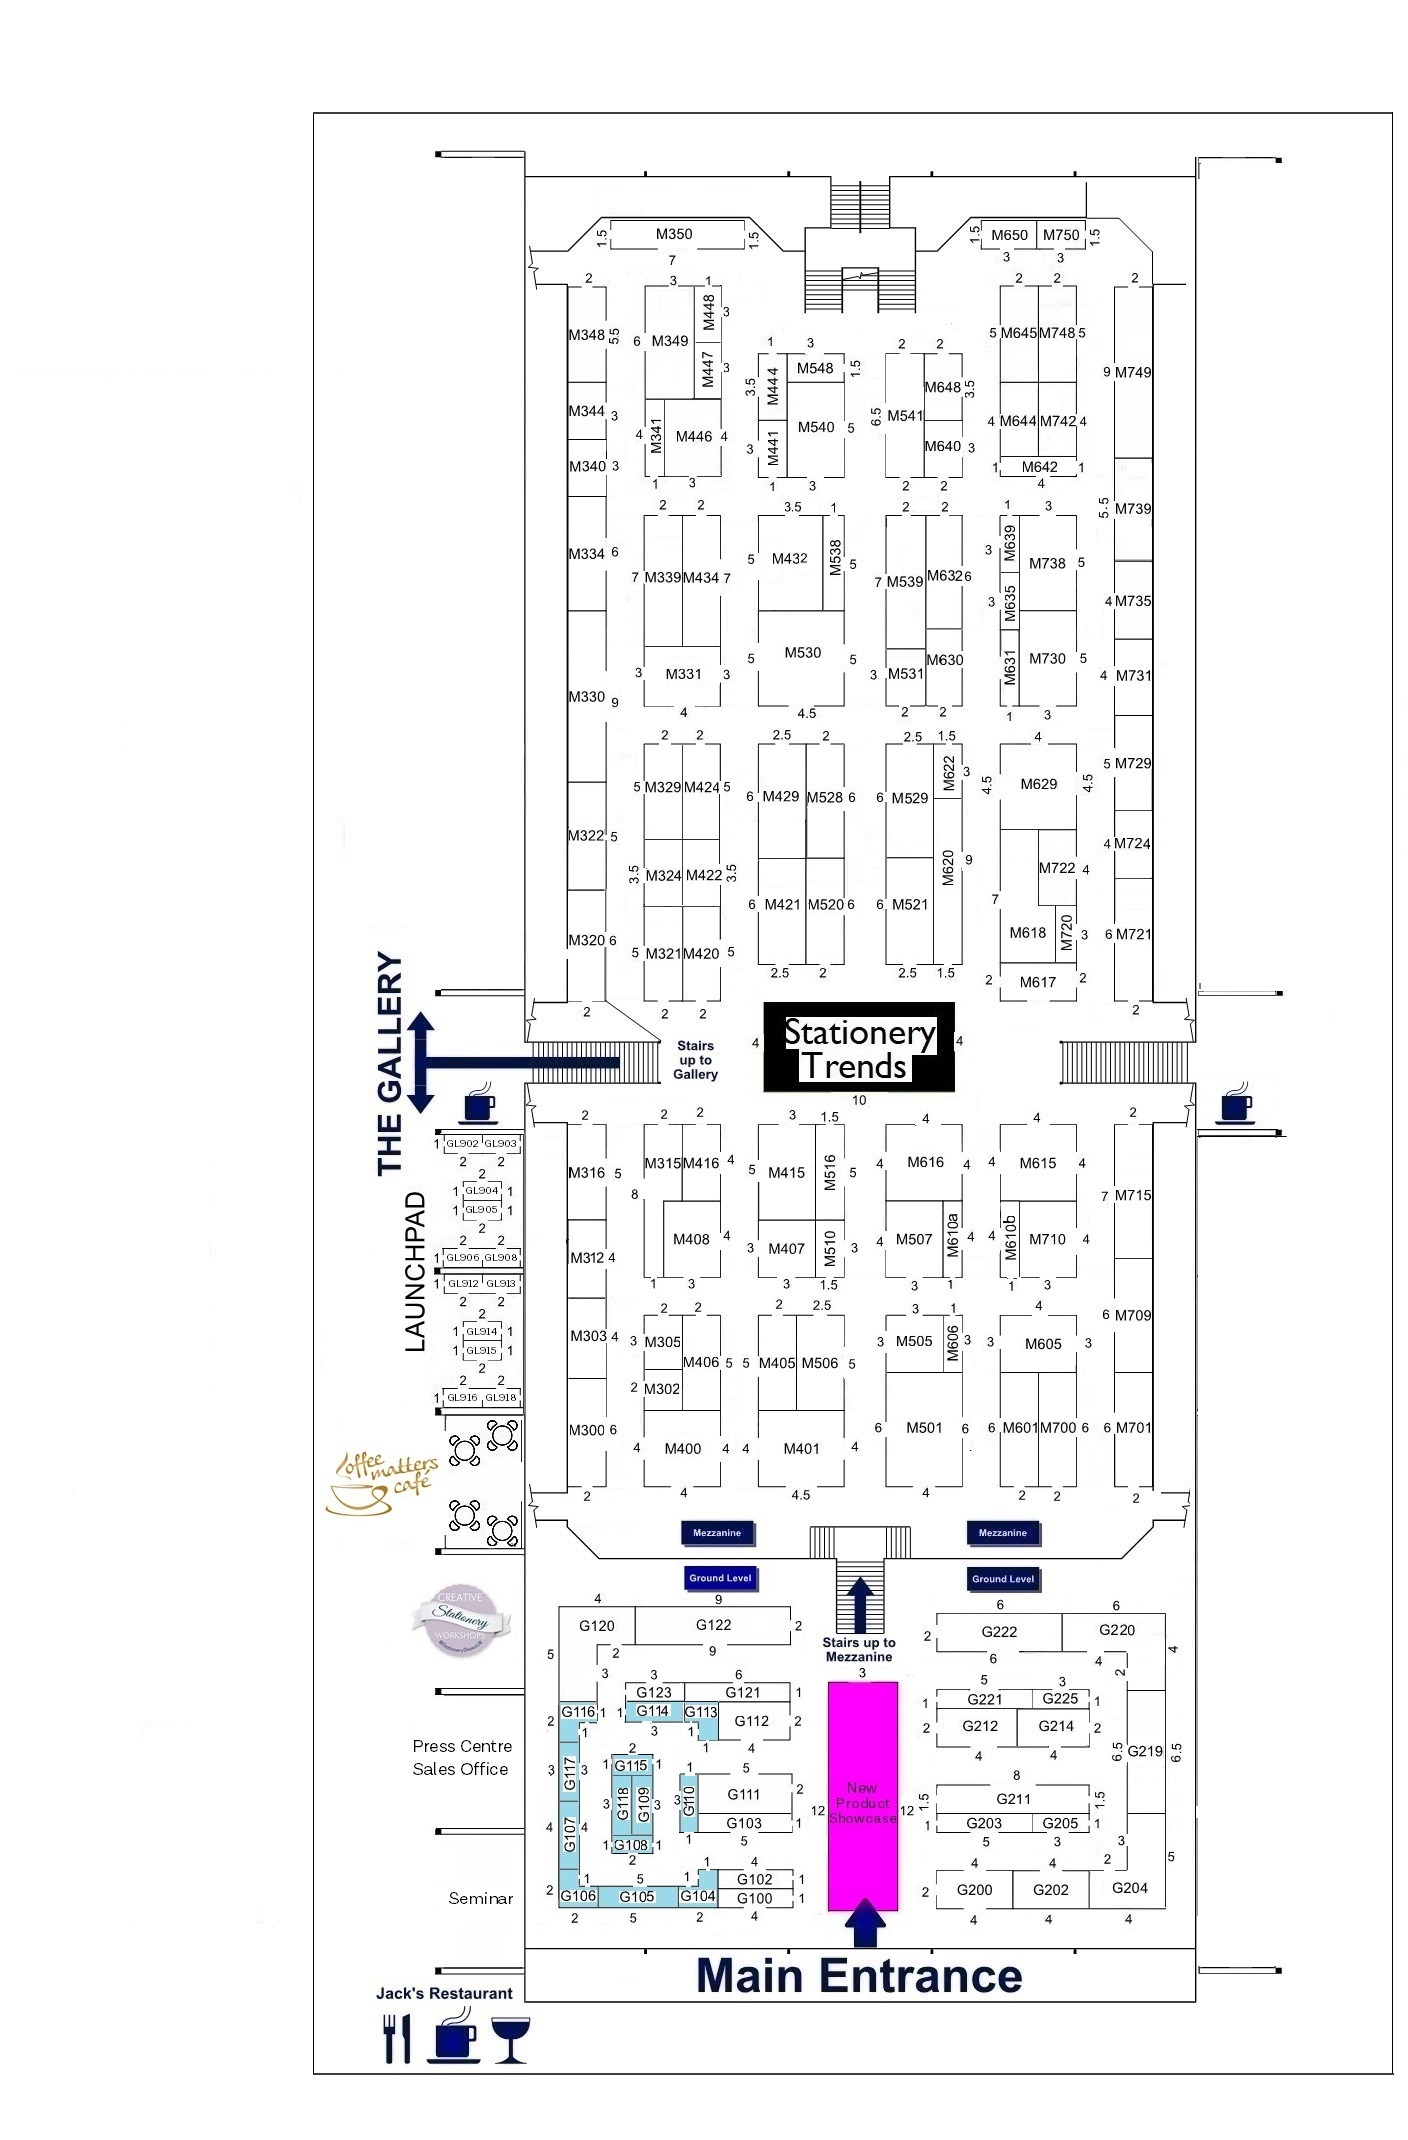 Stationery Show 2019 - Floorplan